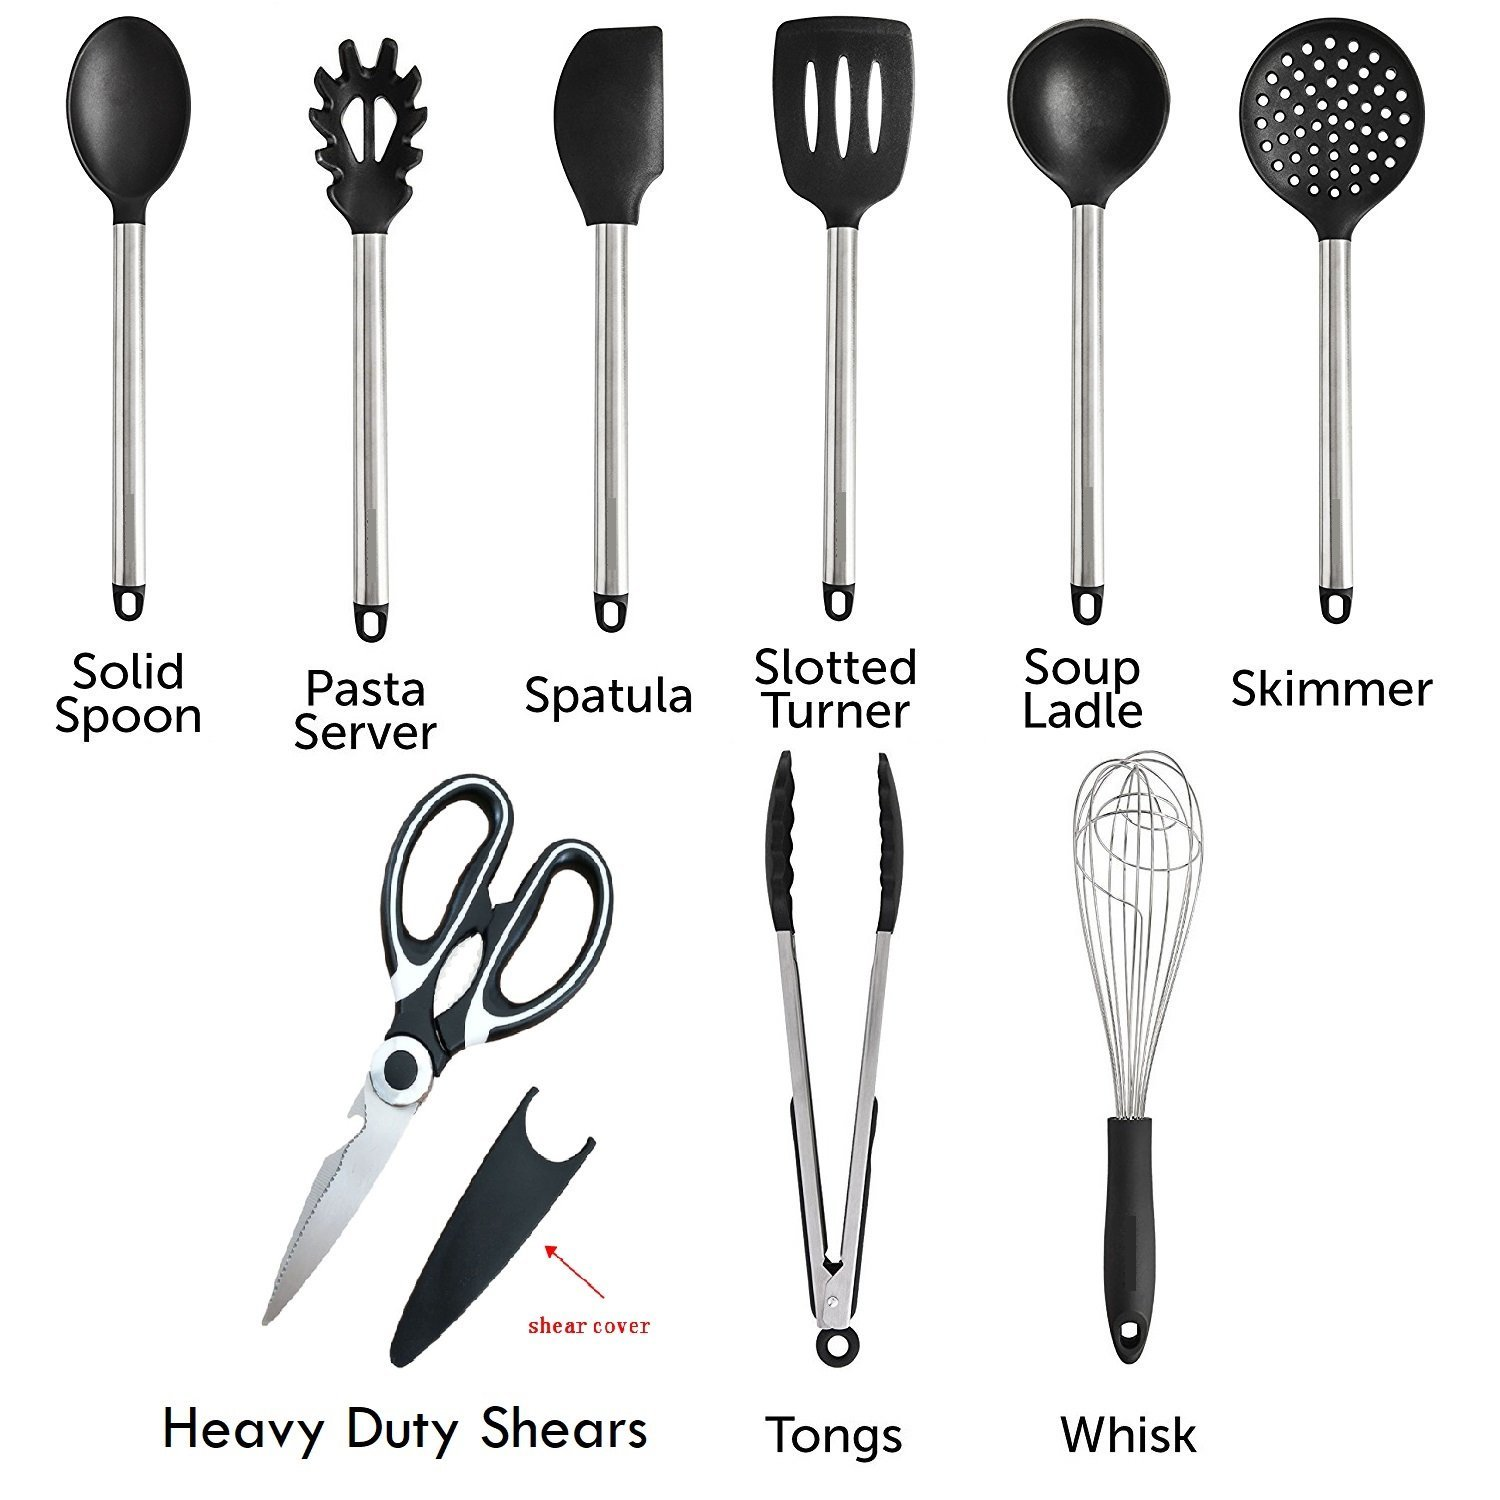 Deal Bonanza Original Silicone and Stainless Steel Kitchen Utensil 9 Piece Set-Turner, Serving Spoon,Strainer,Ladle,Spatula,Pasto Server, Tongs, Whisk and Multi Purpose Scissors Included.